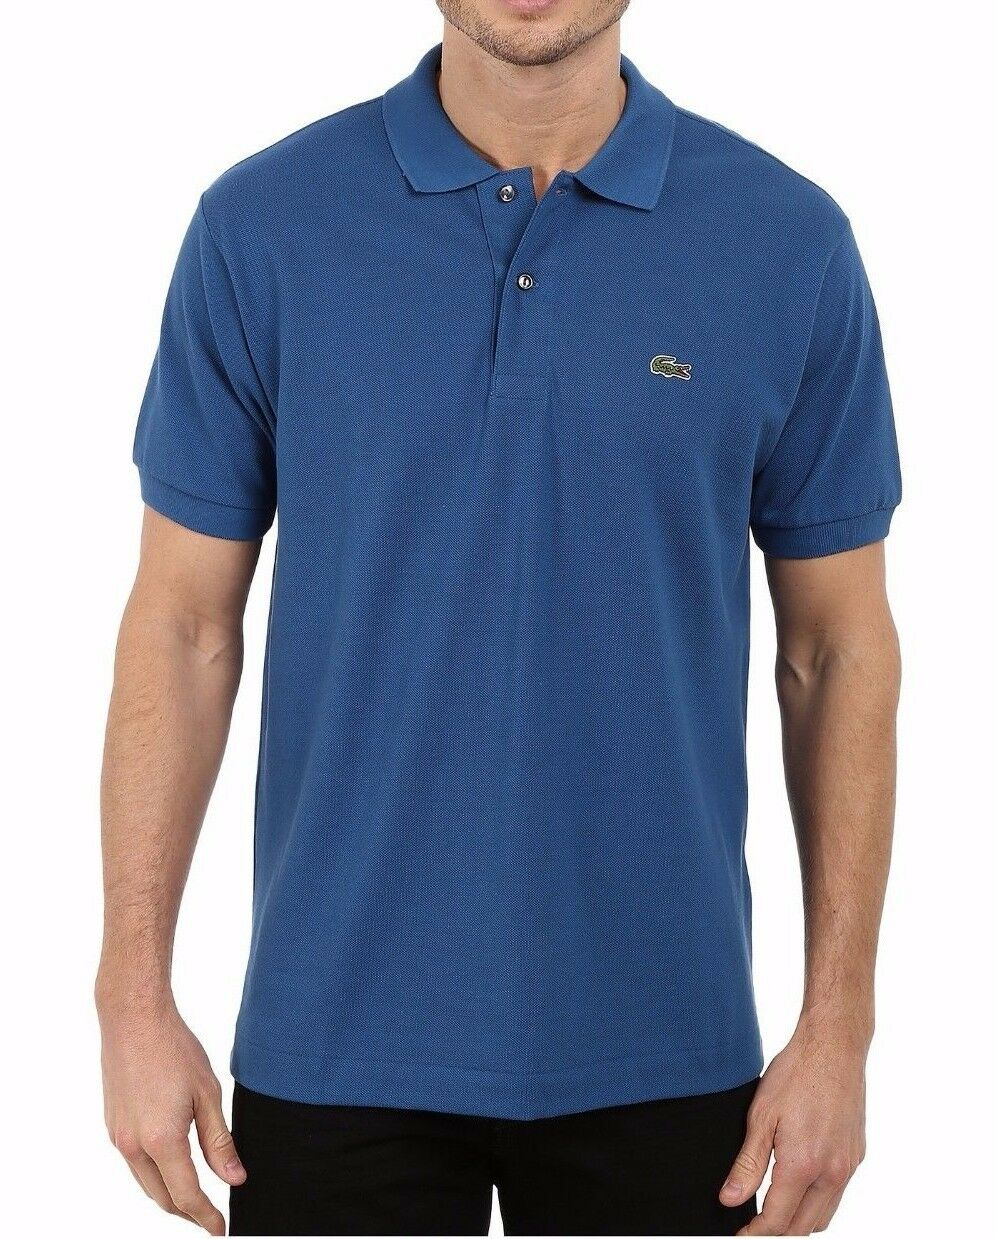 Lacoste Men's 0701 Officer bluee Caiman Classic Pique Polo Shirt Size 3 XS